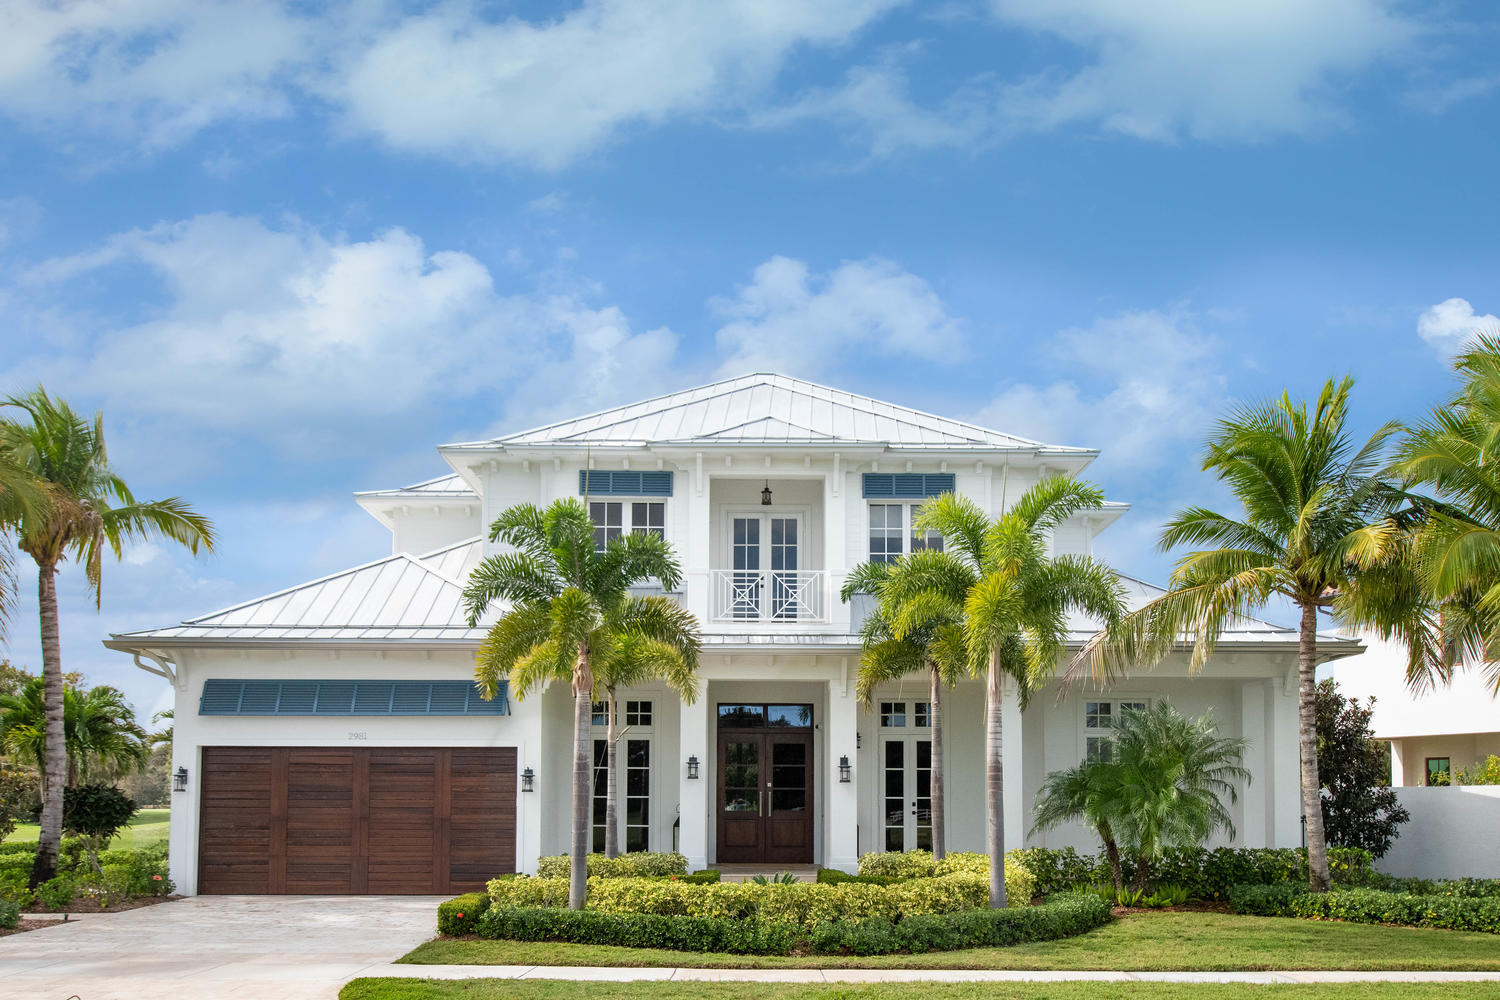 2981 Blue Cypress Lane, Wellington, Florida 33414, 4 Bedrooms Bedrooms, ,4.1 BathroomsBathrooms,Single Family,For Sale,Palm Beach Polo,Blue Cypress,RX-10573239